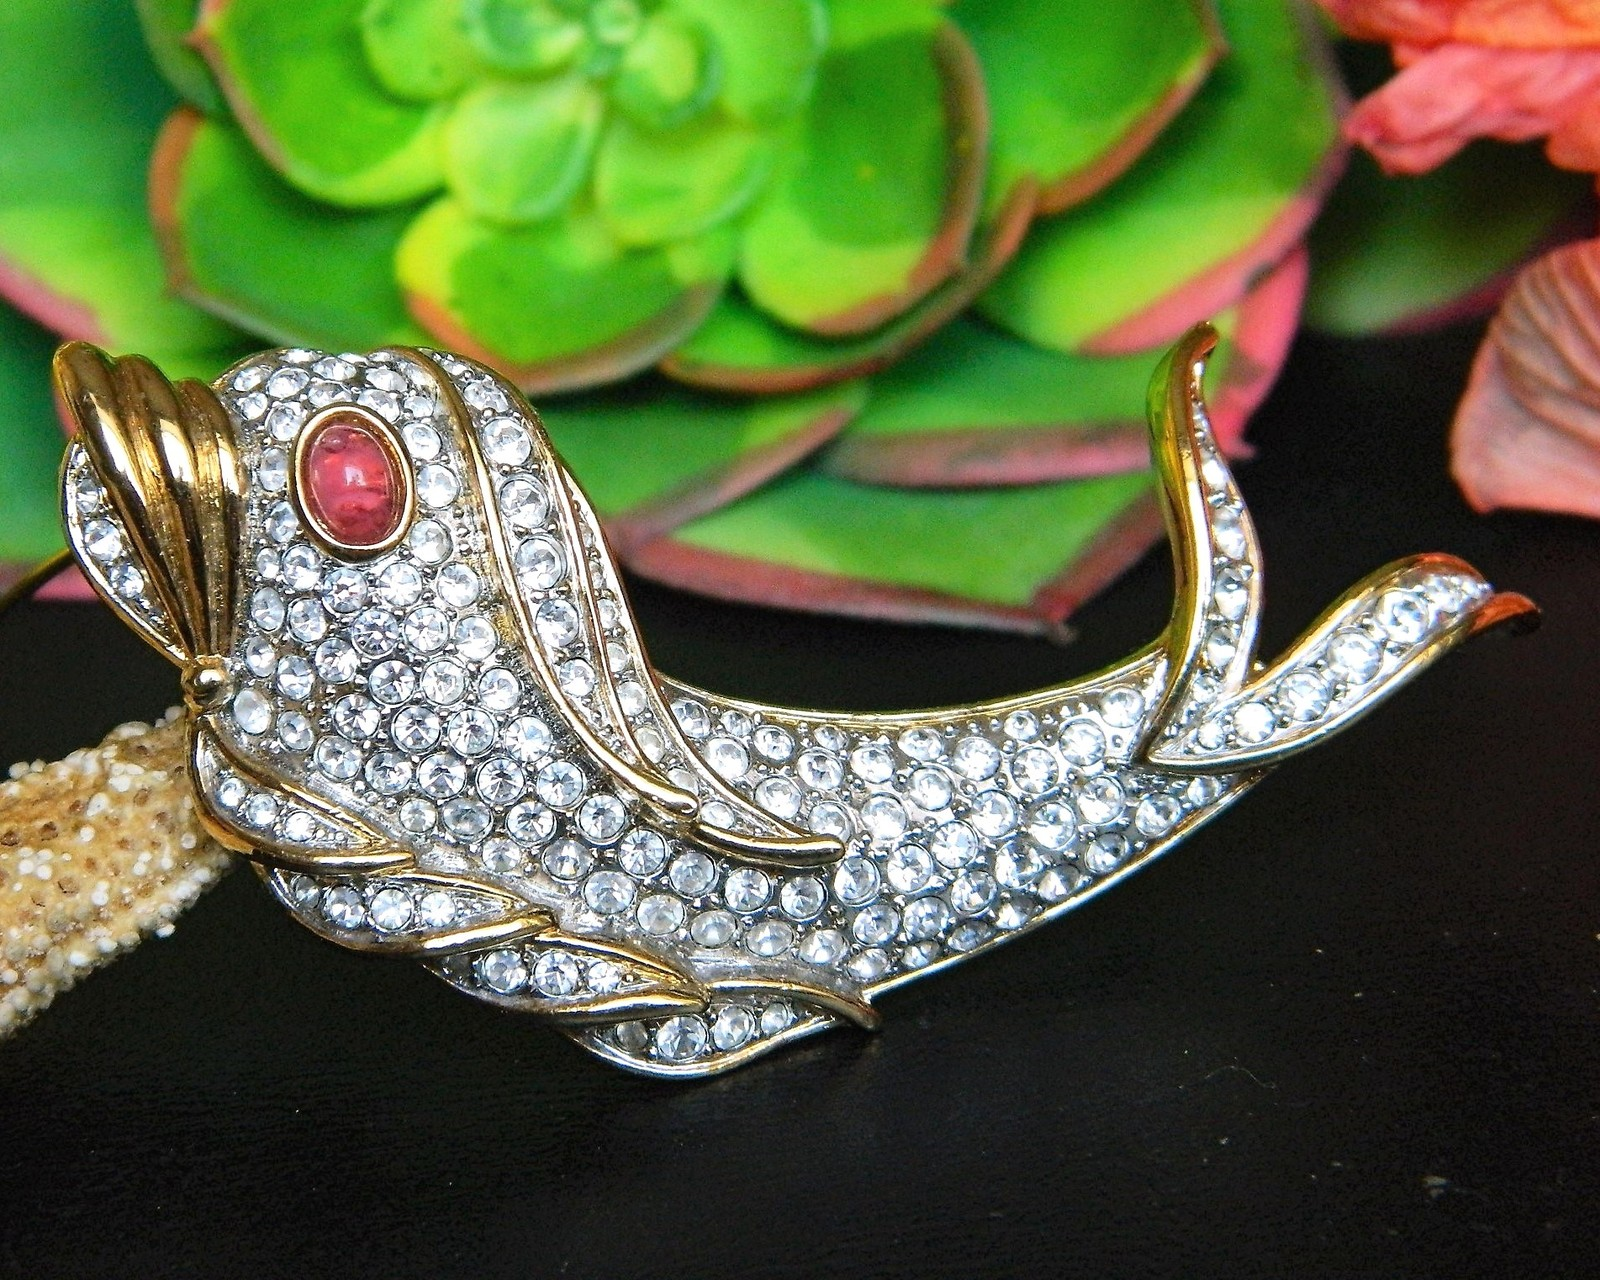 Vintage Fish Dolphin Brooch Pin Attwood Sawyer Rhinestones Signed A&S